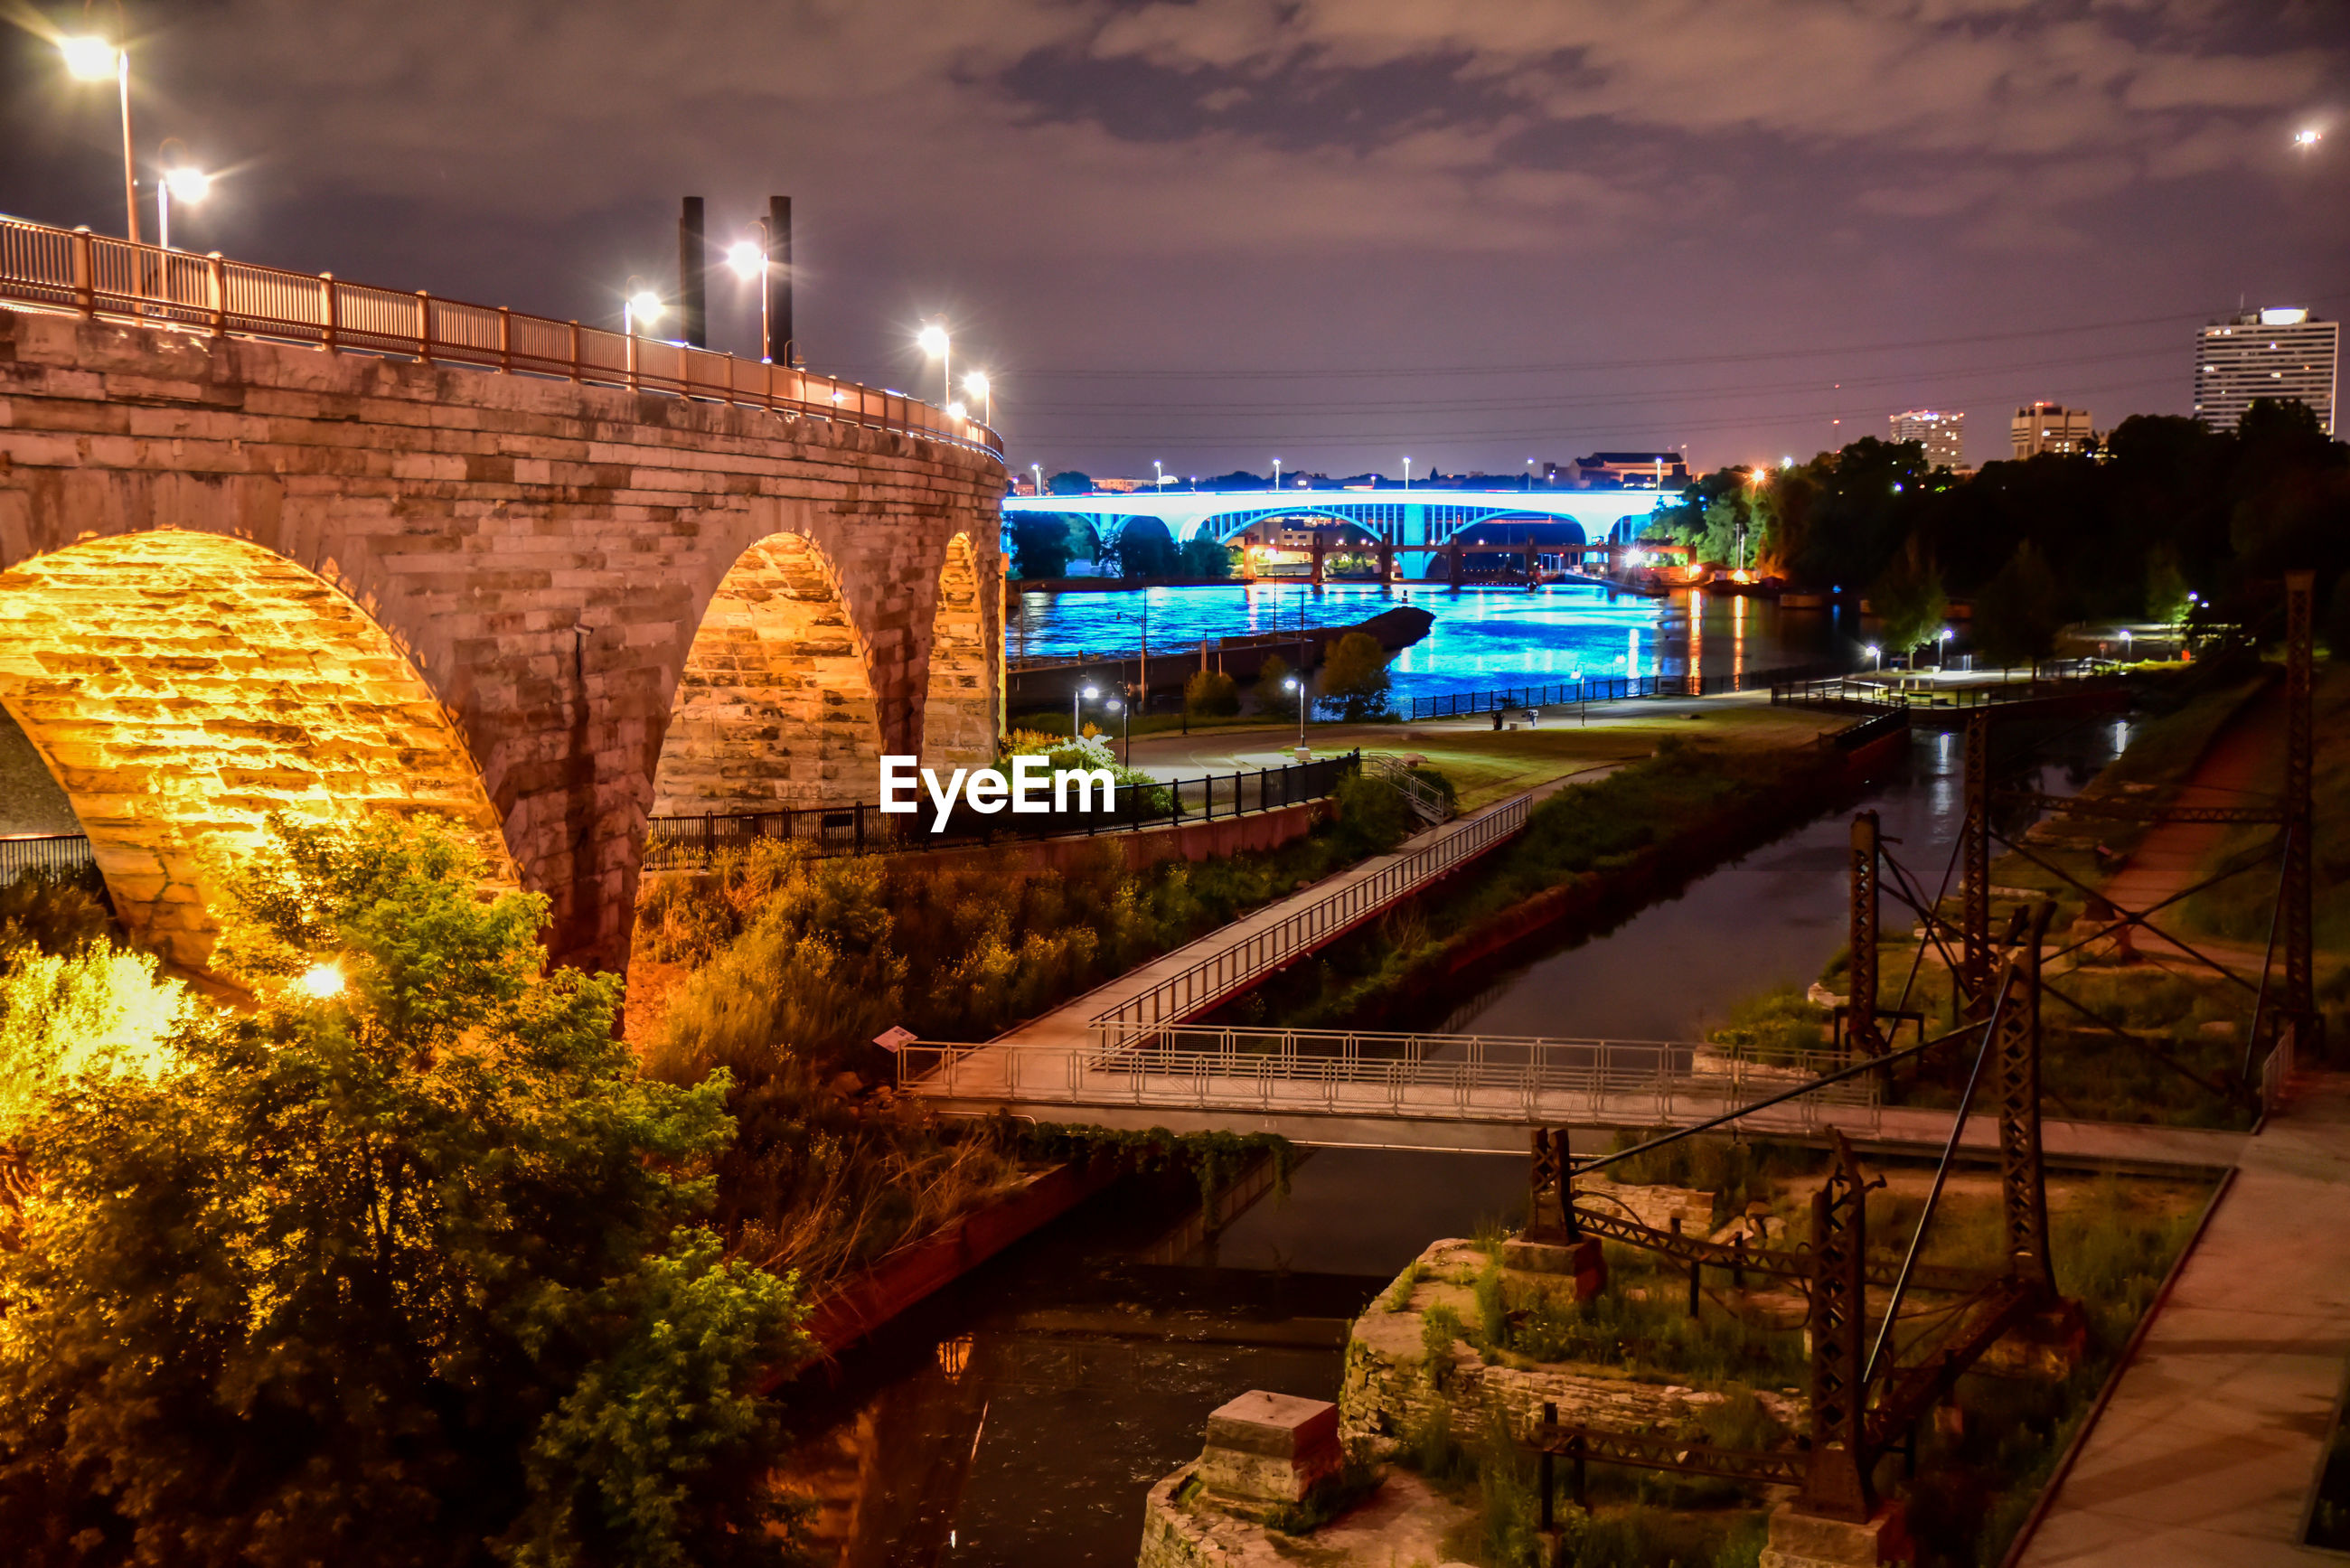 Bridge over river in city against sky at night